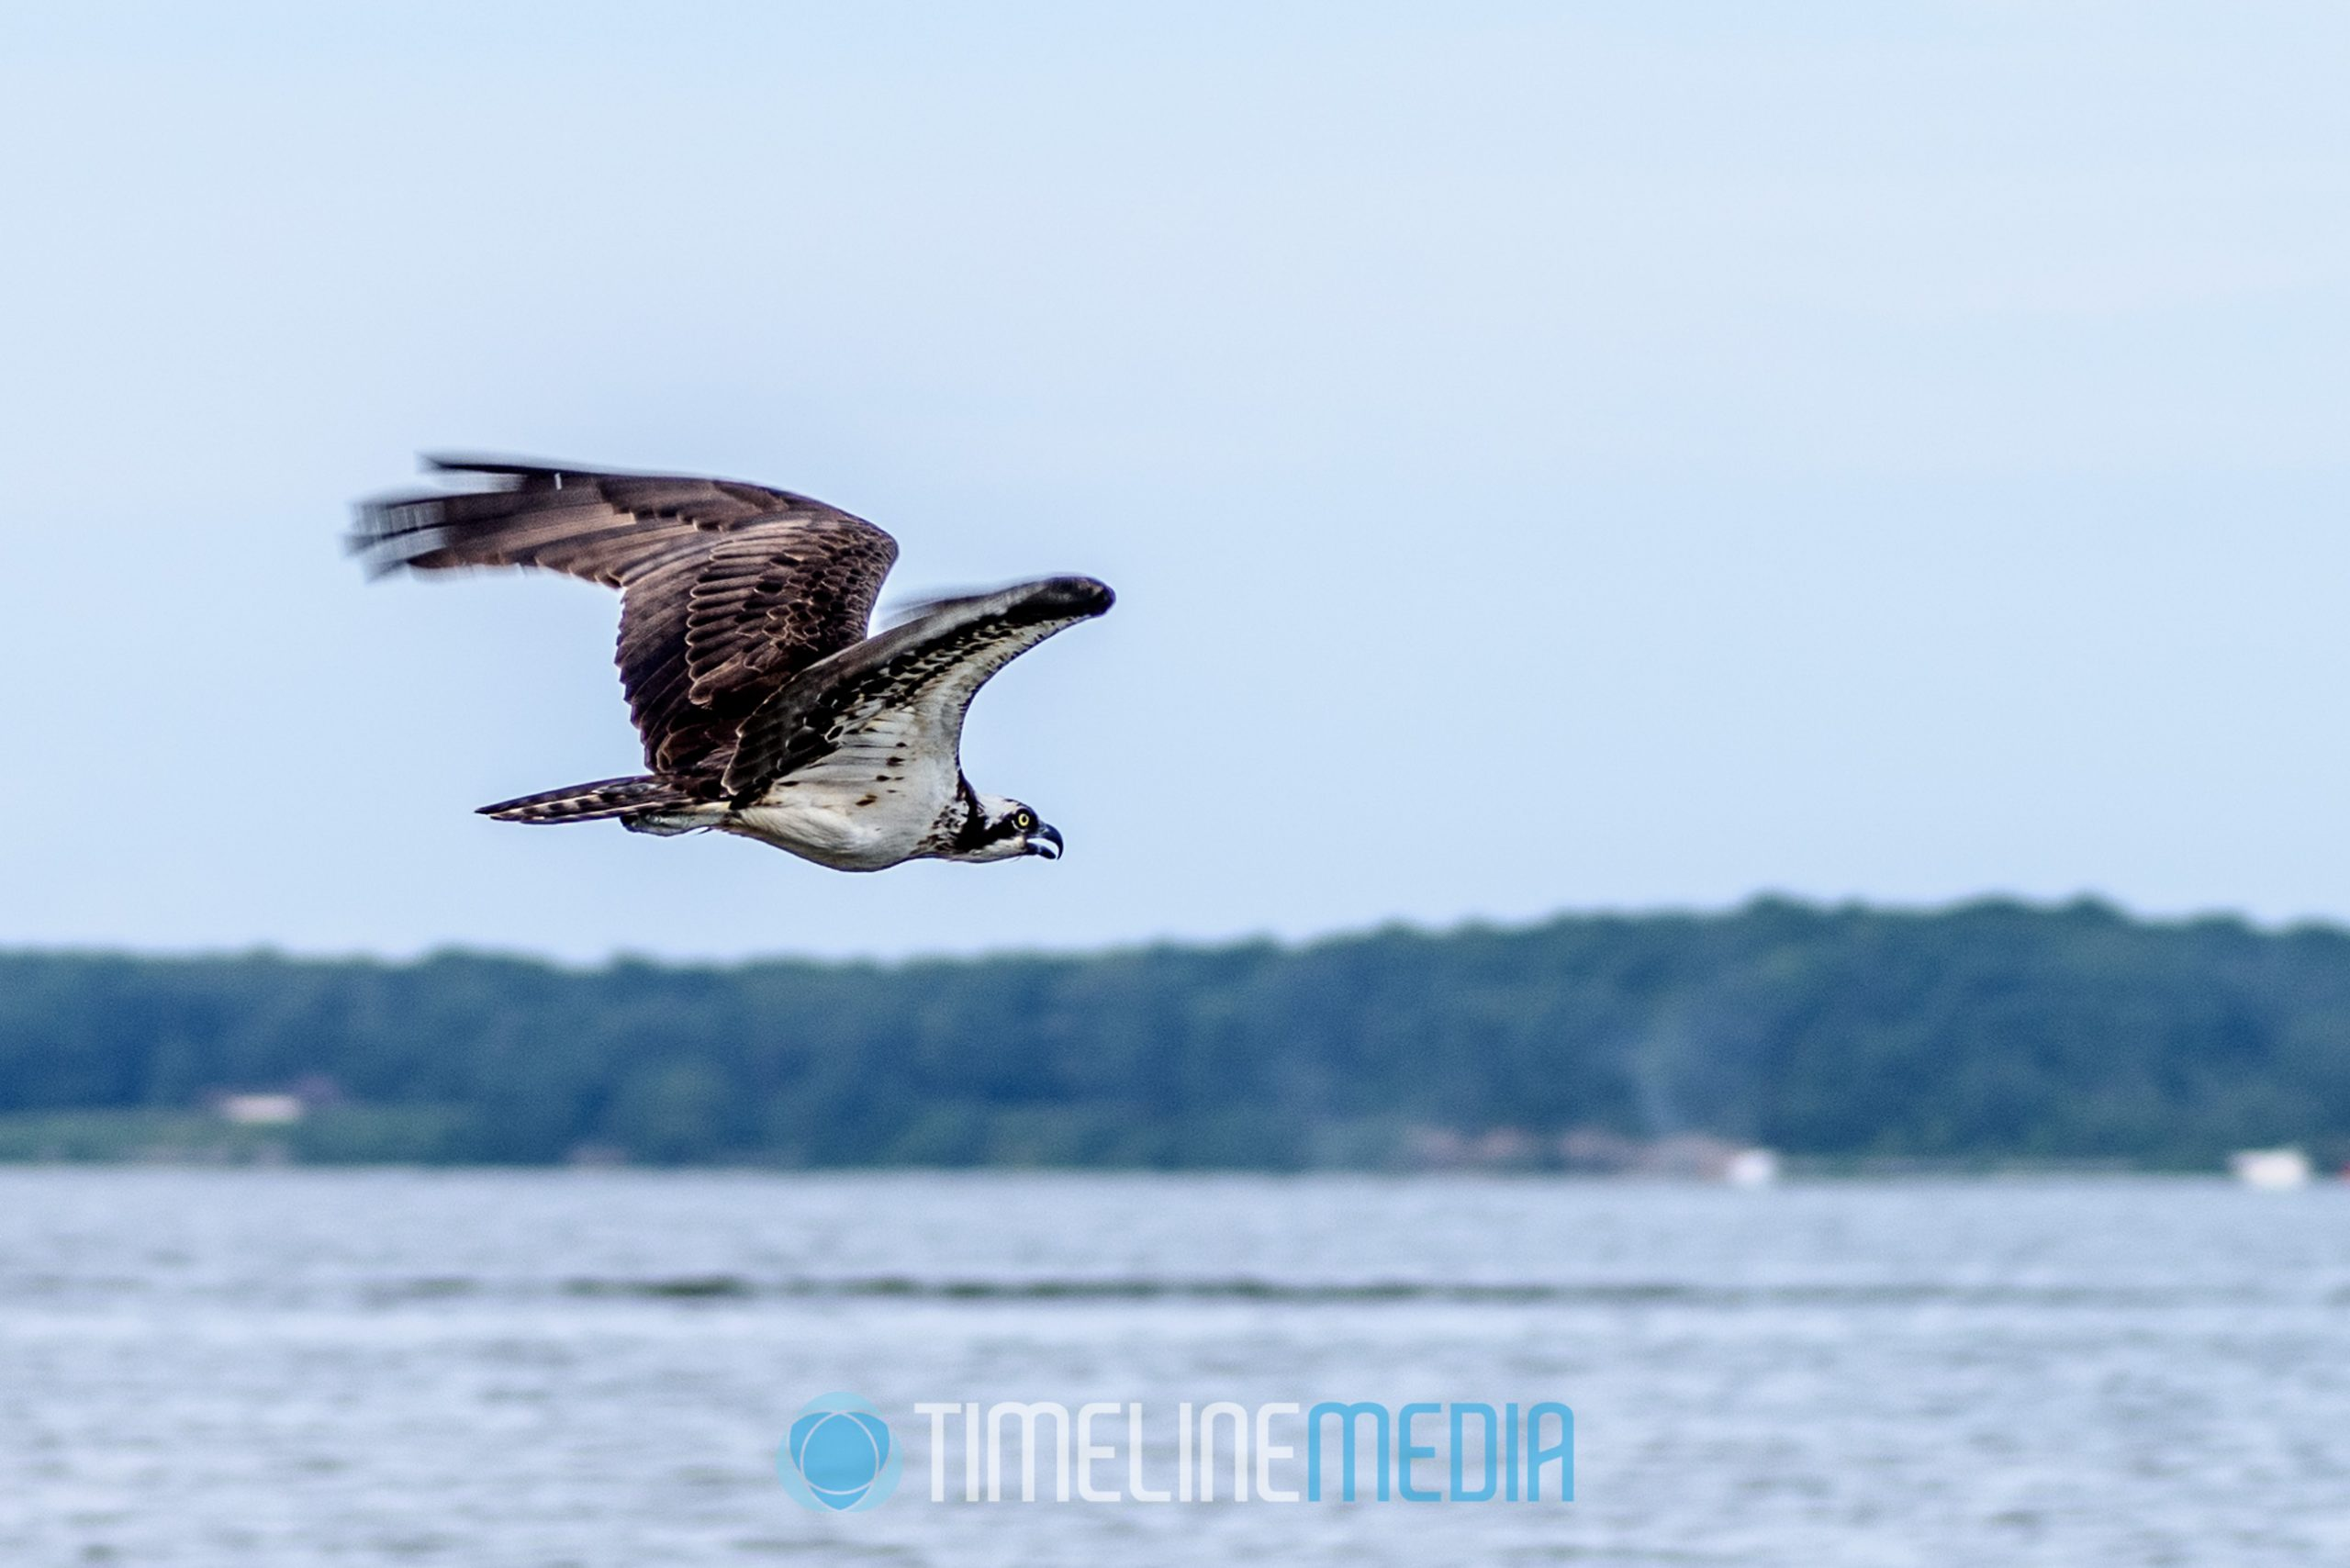 Shore birds flying over Featherstone Shores on the Occoquan River, Woodbridge, VA ©TimeLine Media